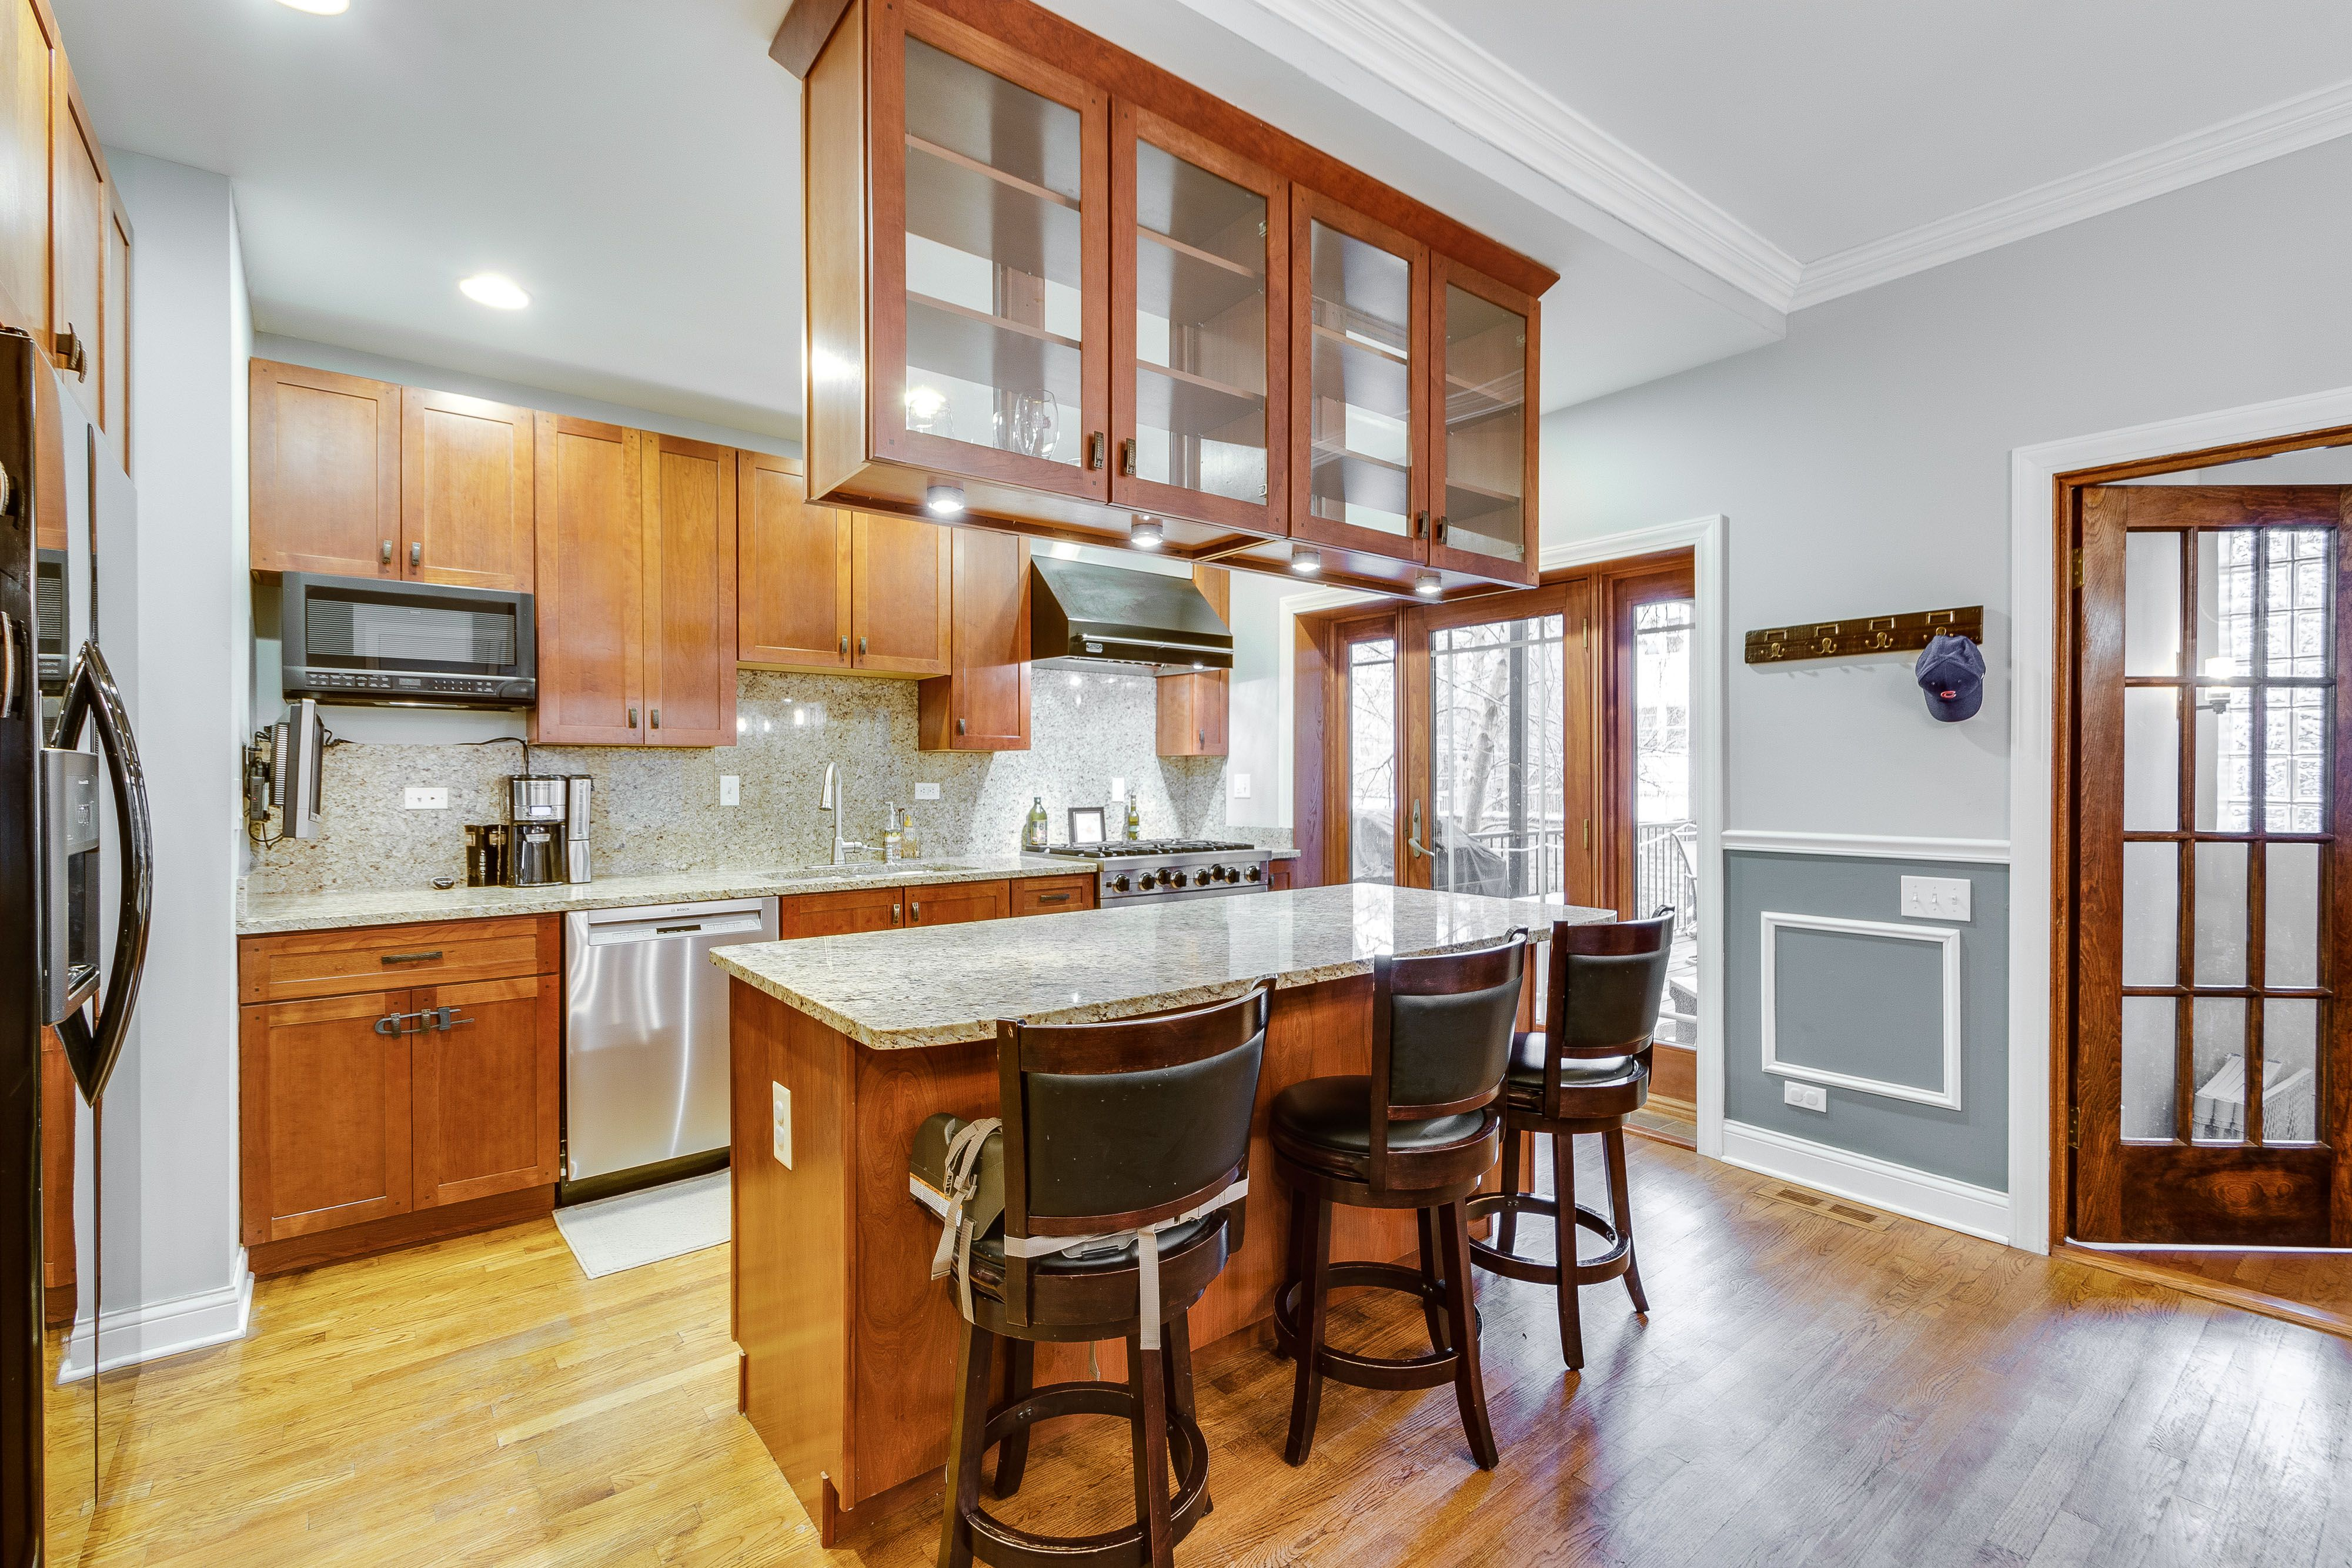 This cavernous 3 bedroom duplex for rent in Rogers Park